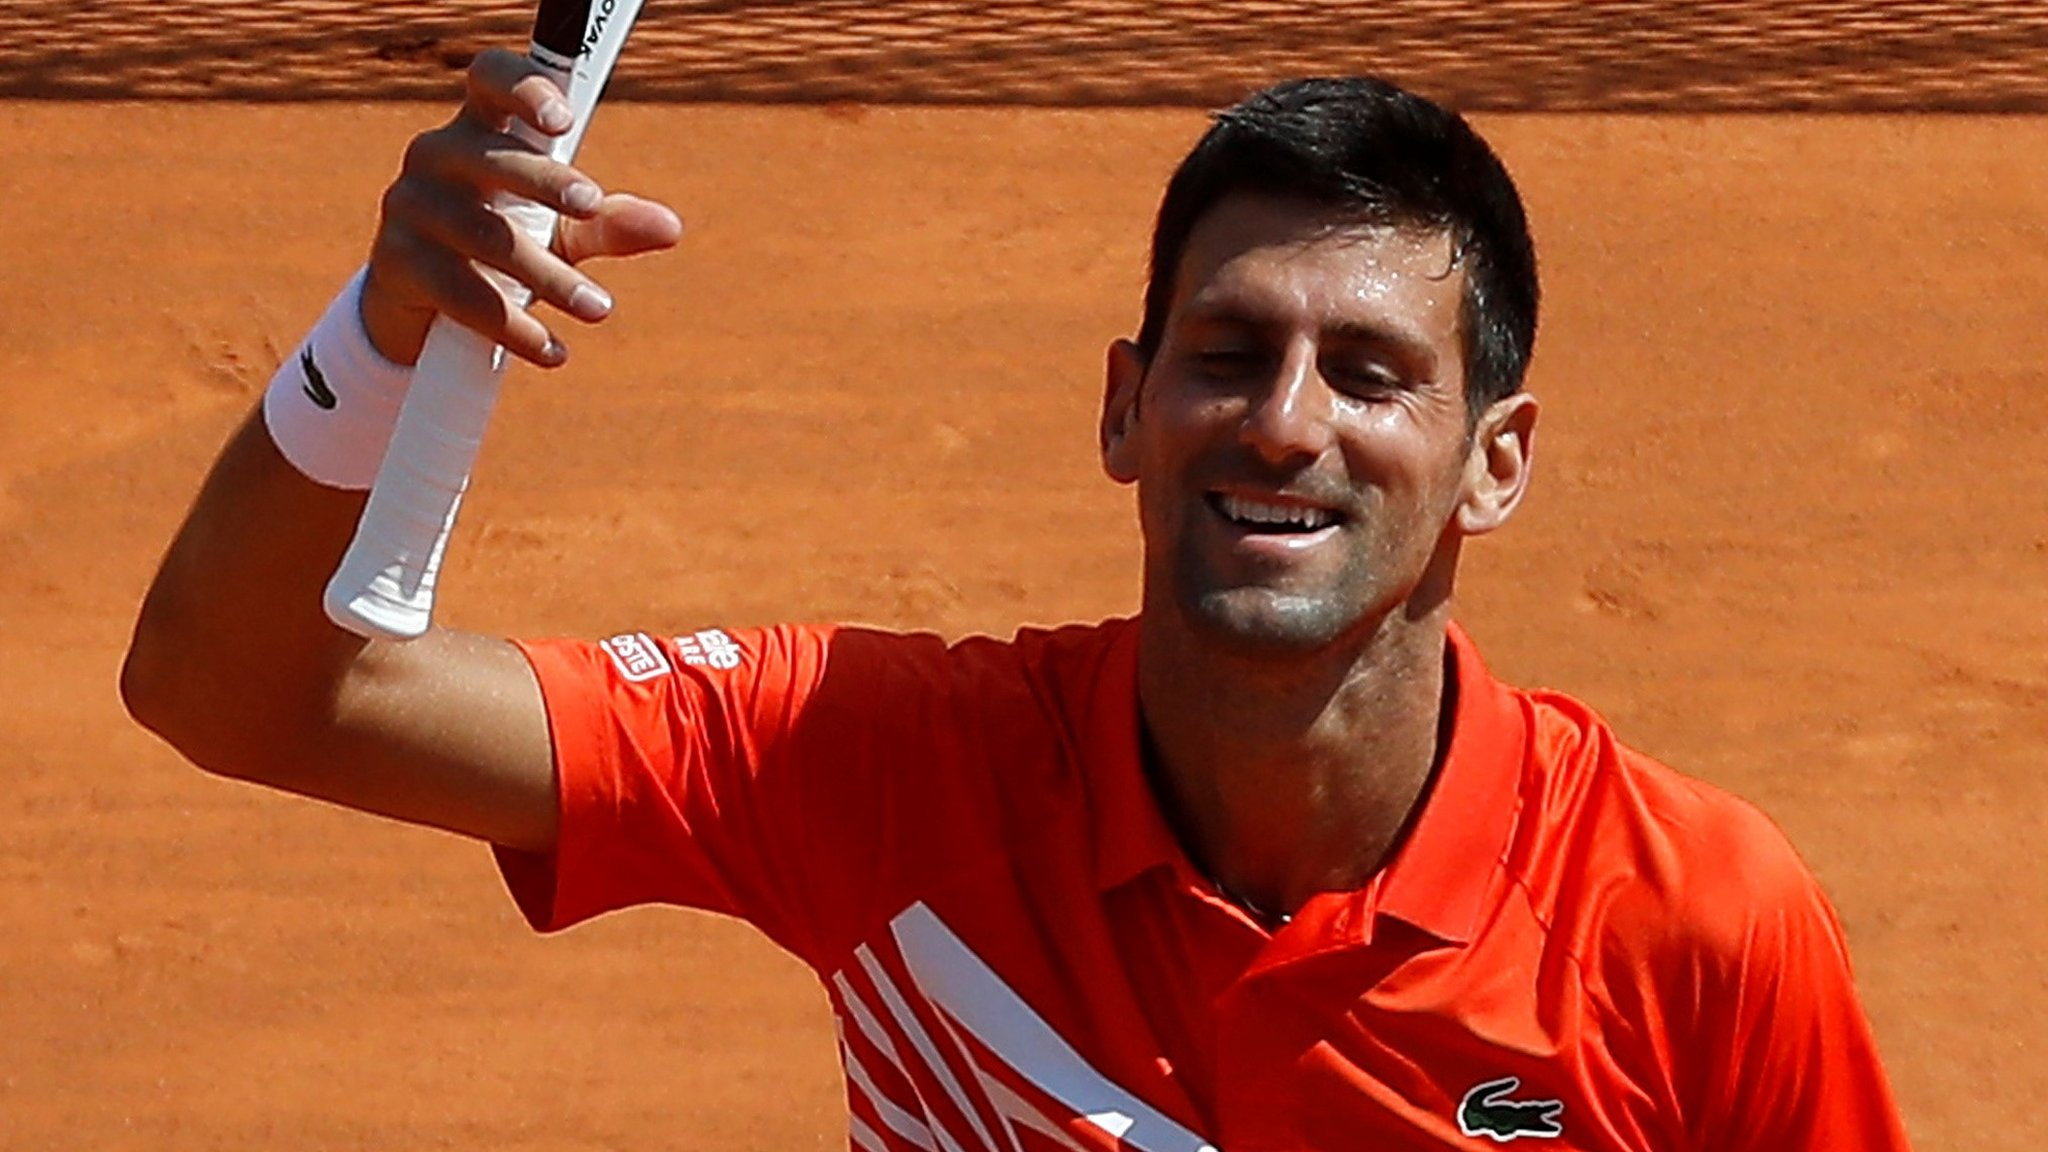 Djokovic & Nadal through, Norrie out in Monte Carlo